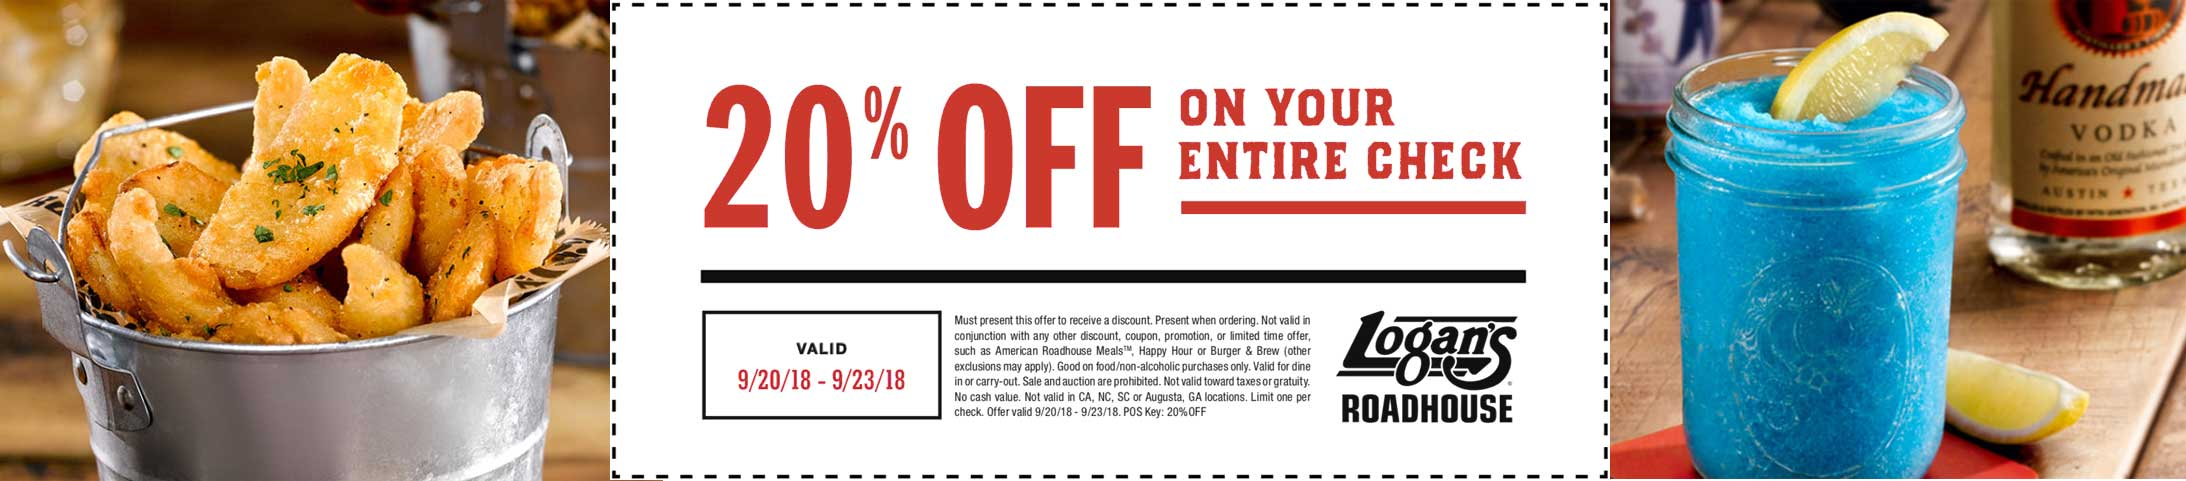 Logans Roadhouse Coupon December 2019 20% off at Logans Roadhouse restaurants